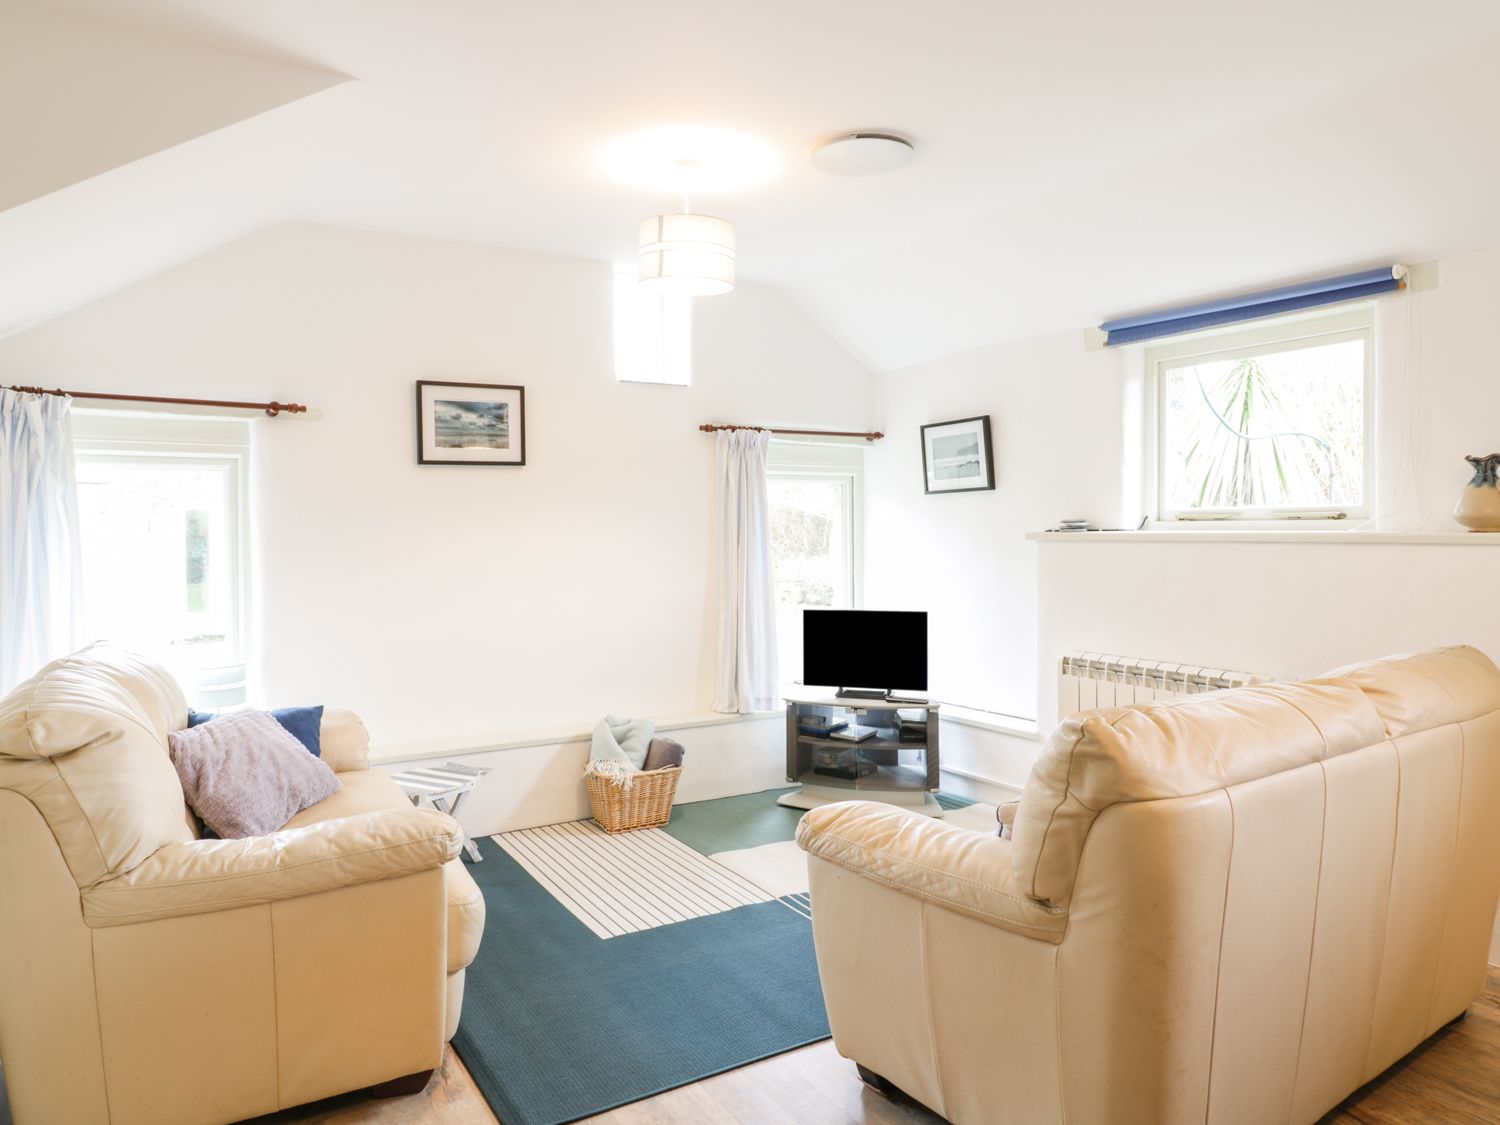 The Cottage in Newquay - sleeps 2 people